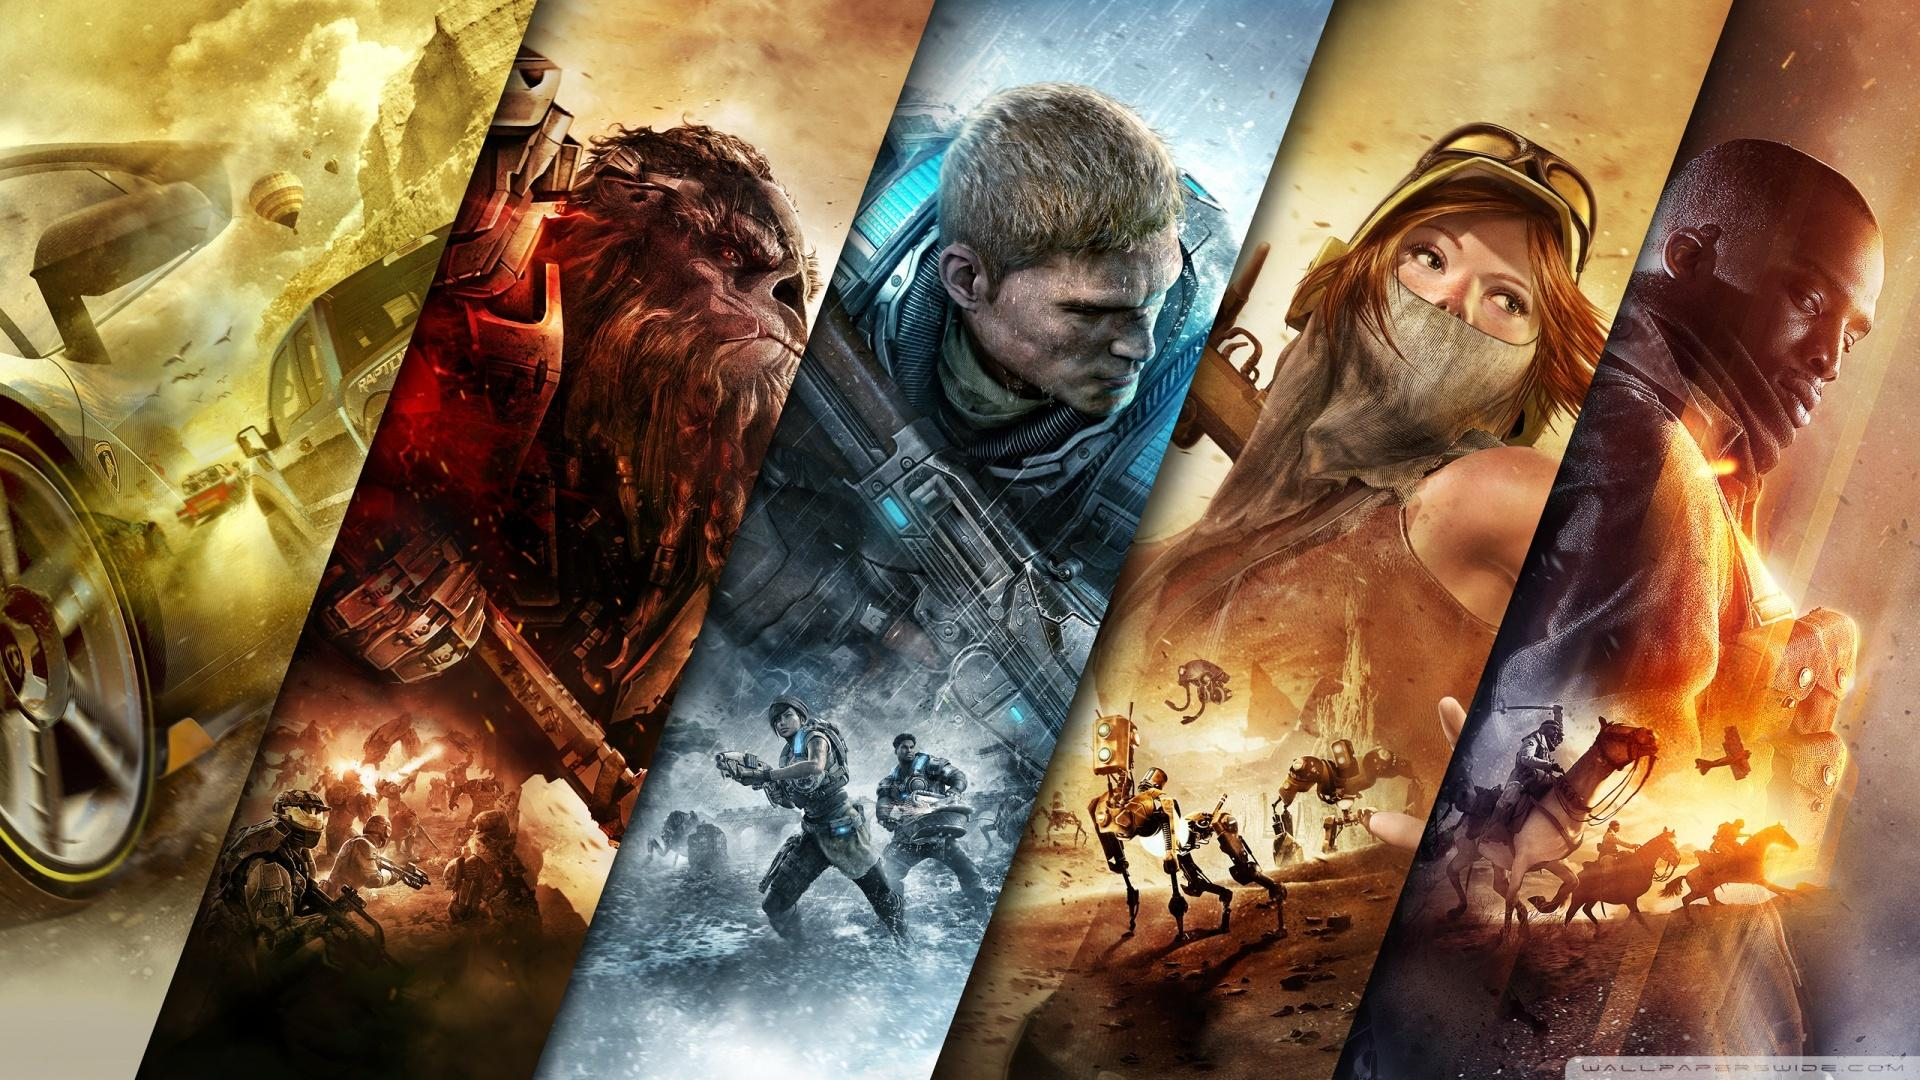 Video Games Wallpapers 1080p Posted By Michelle Peltier